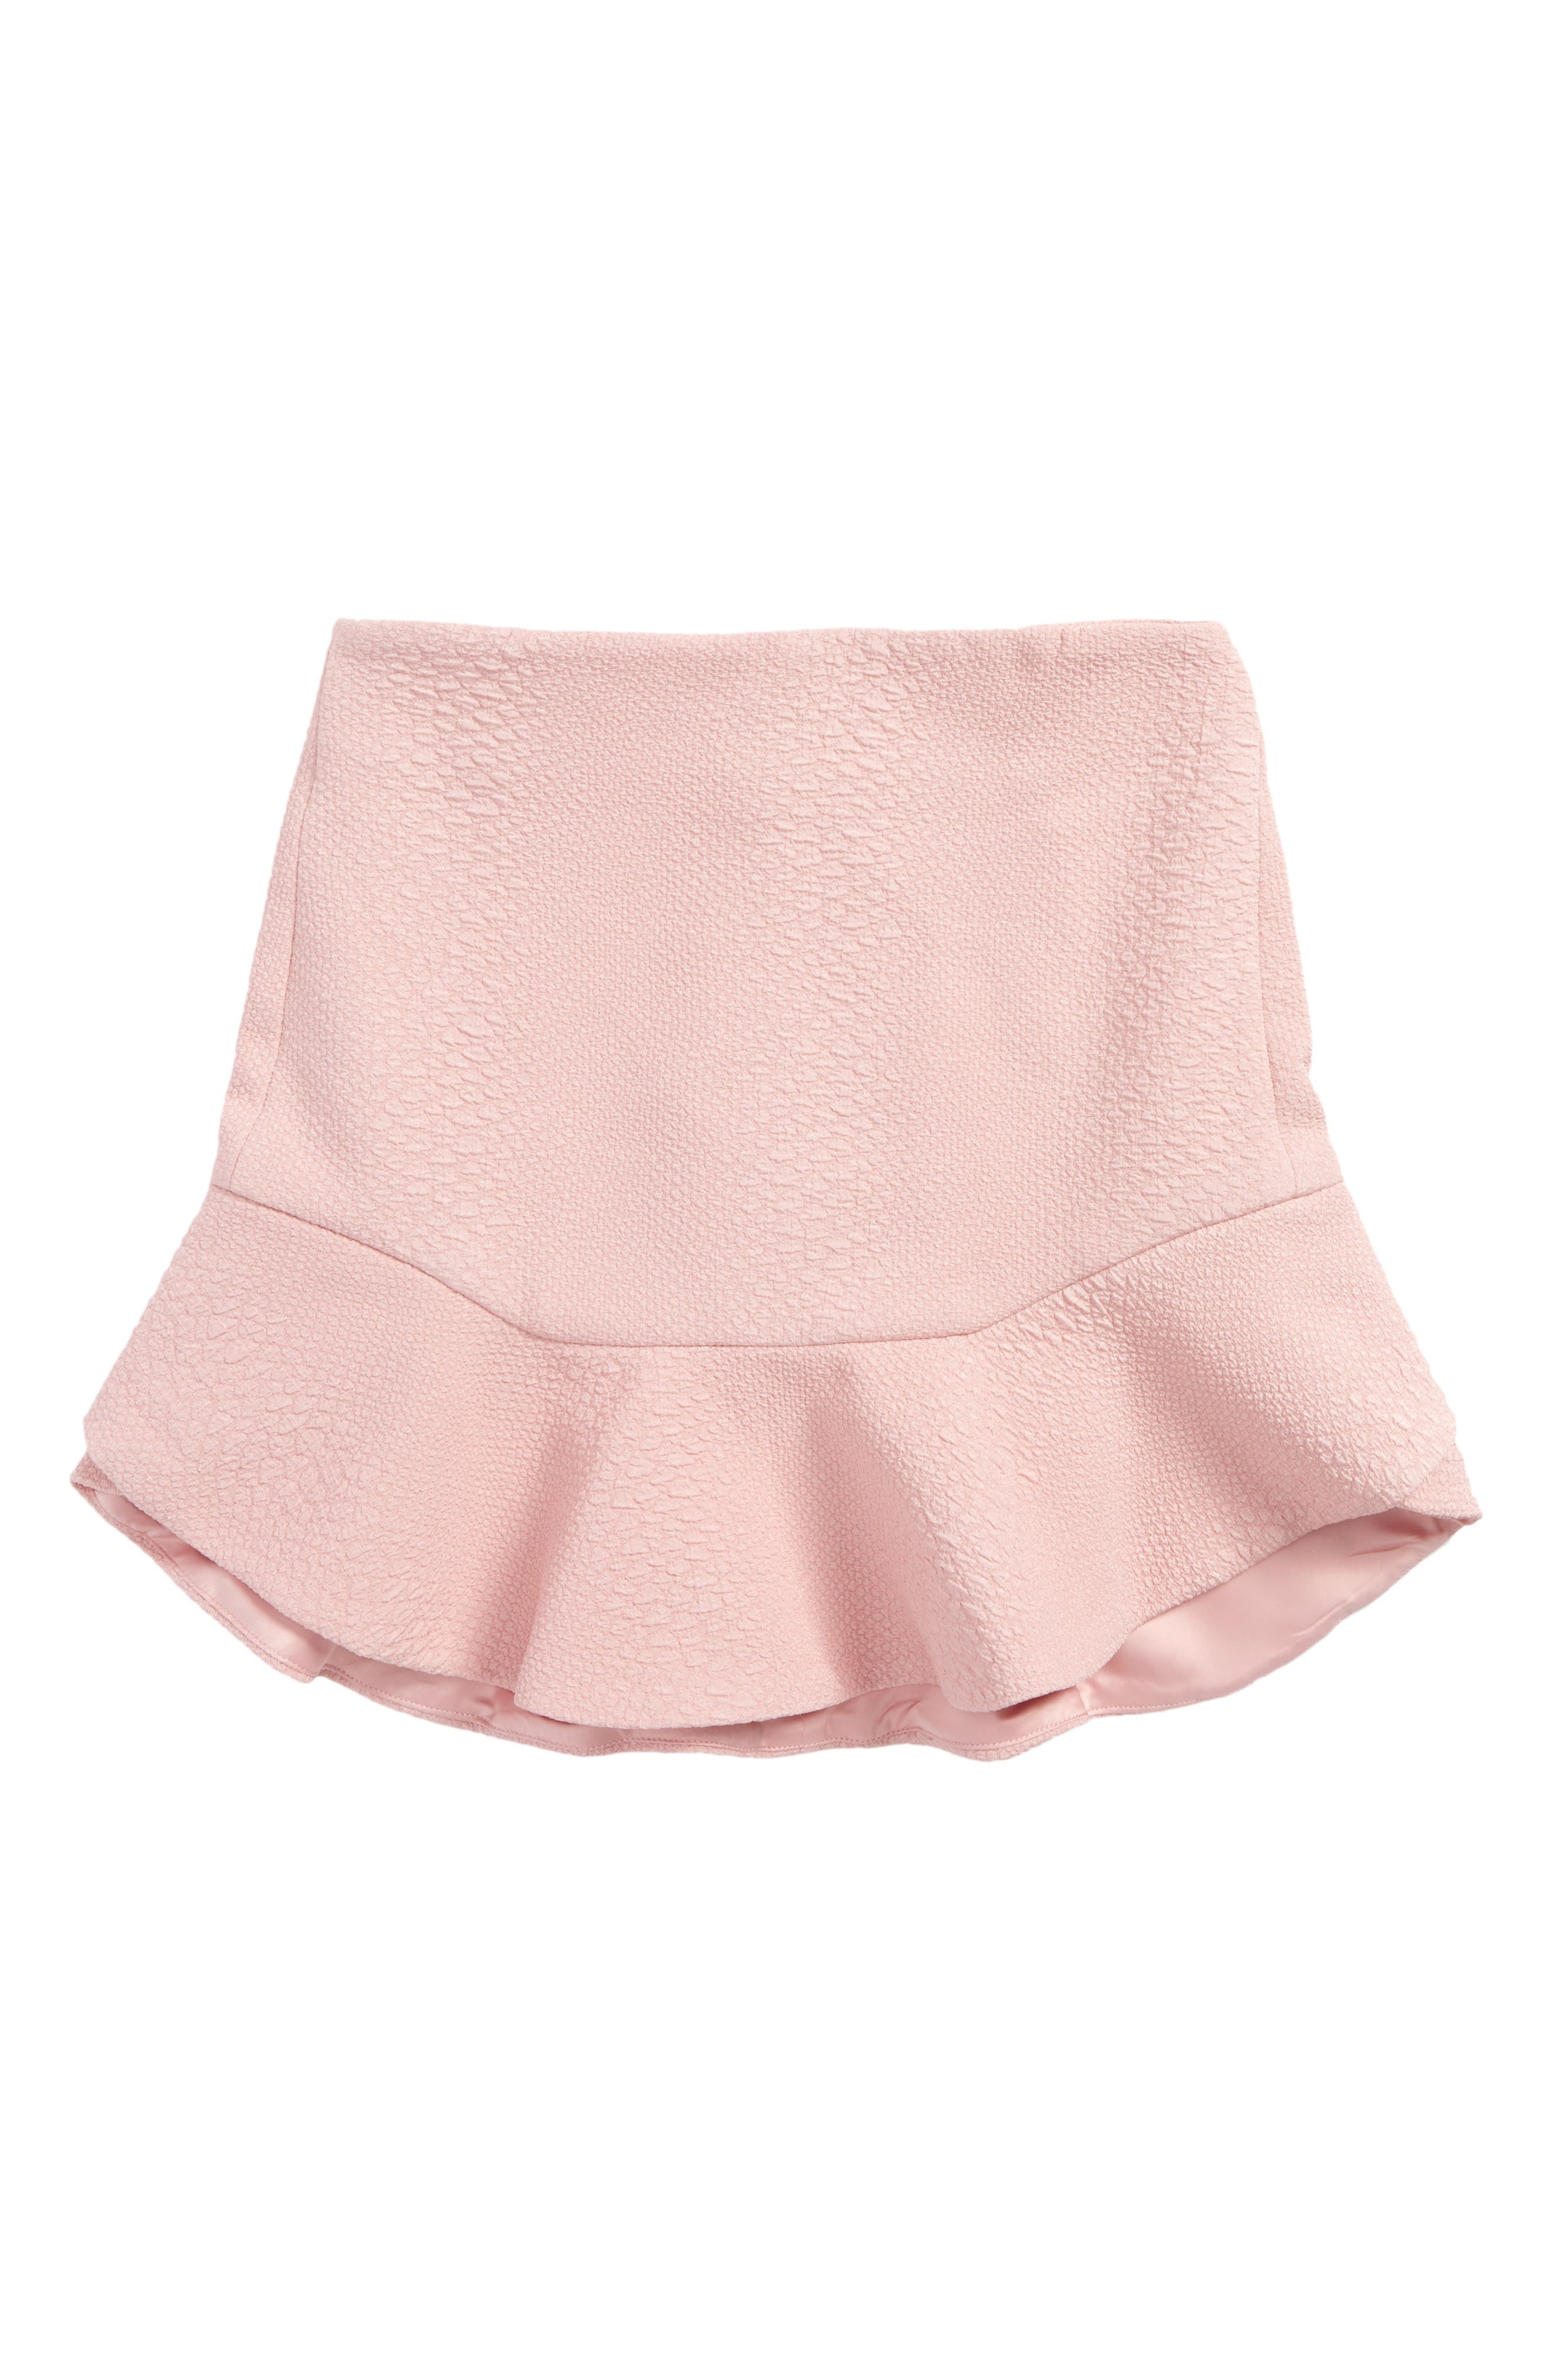 Frill Skirt,                         Main,                         color, Pink